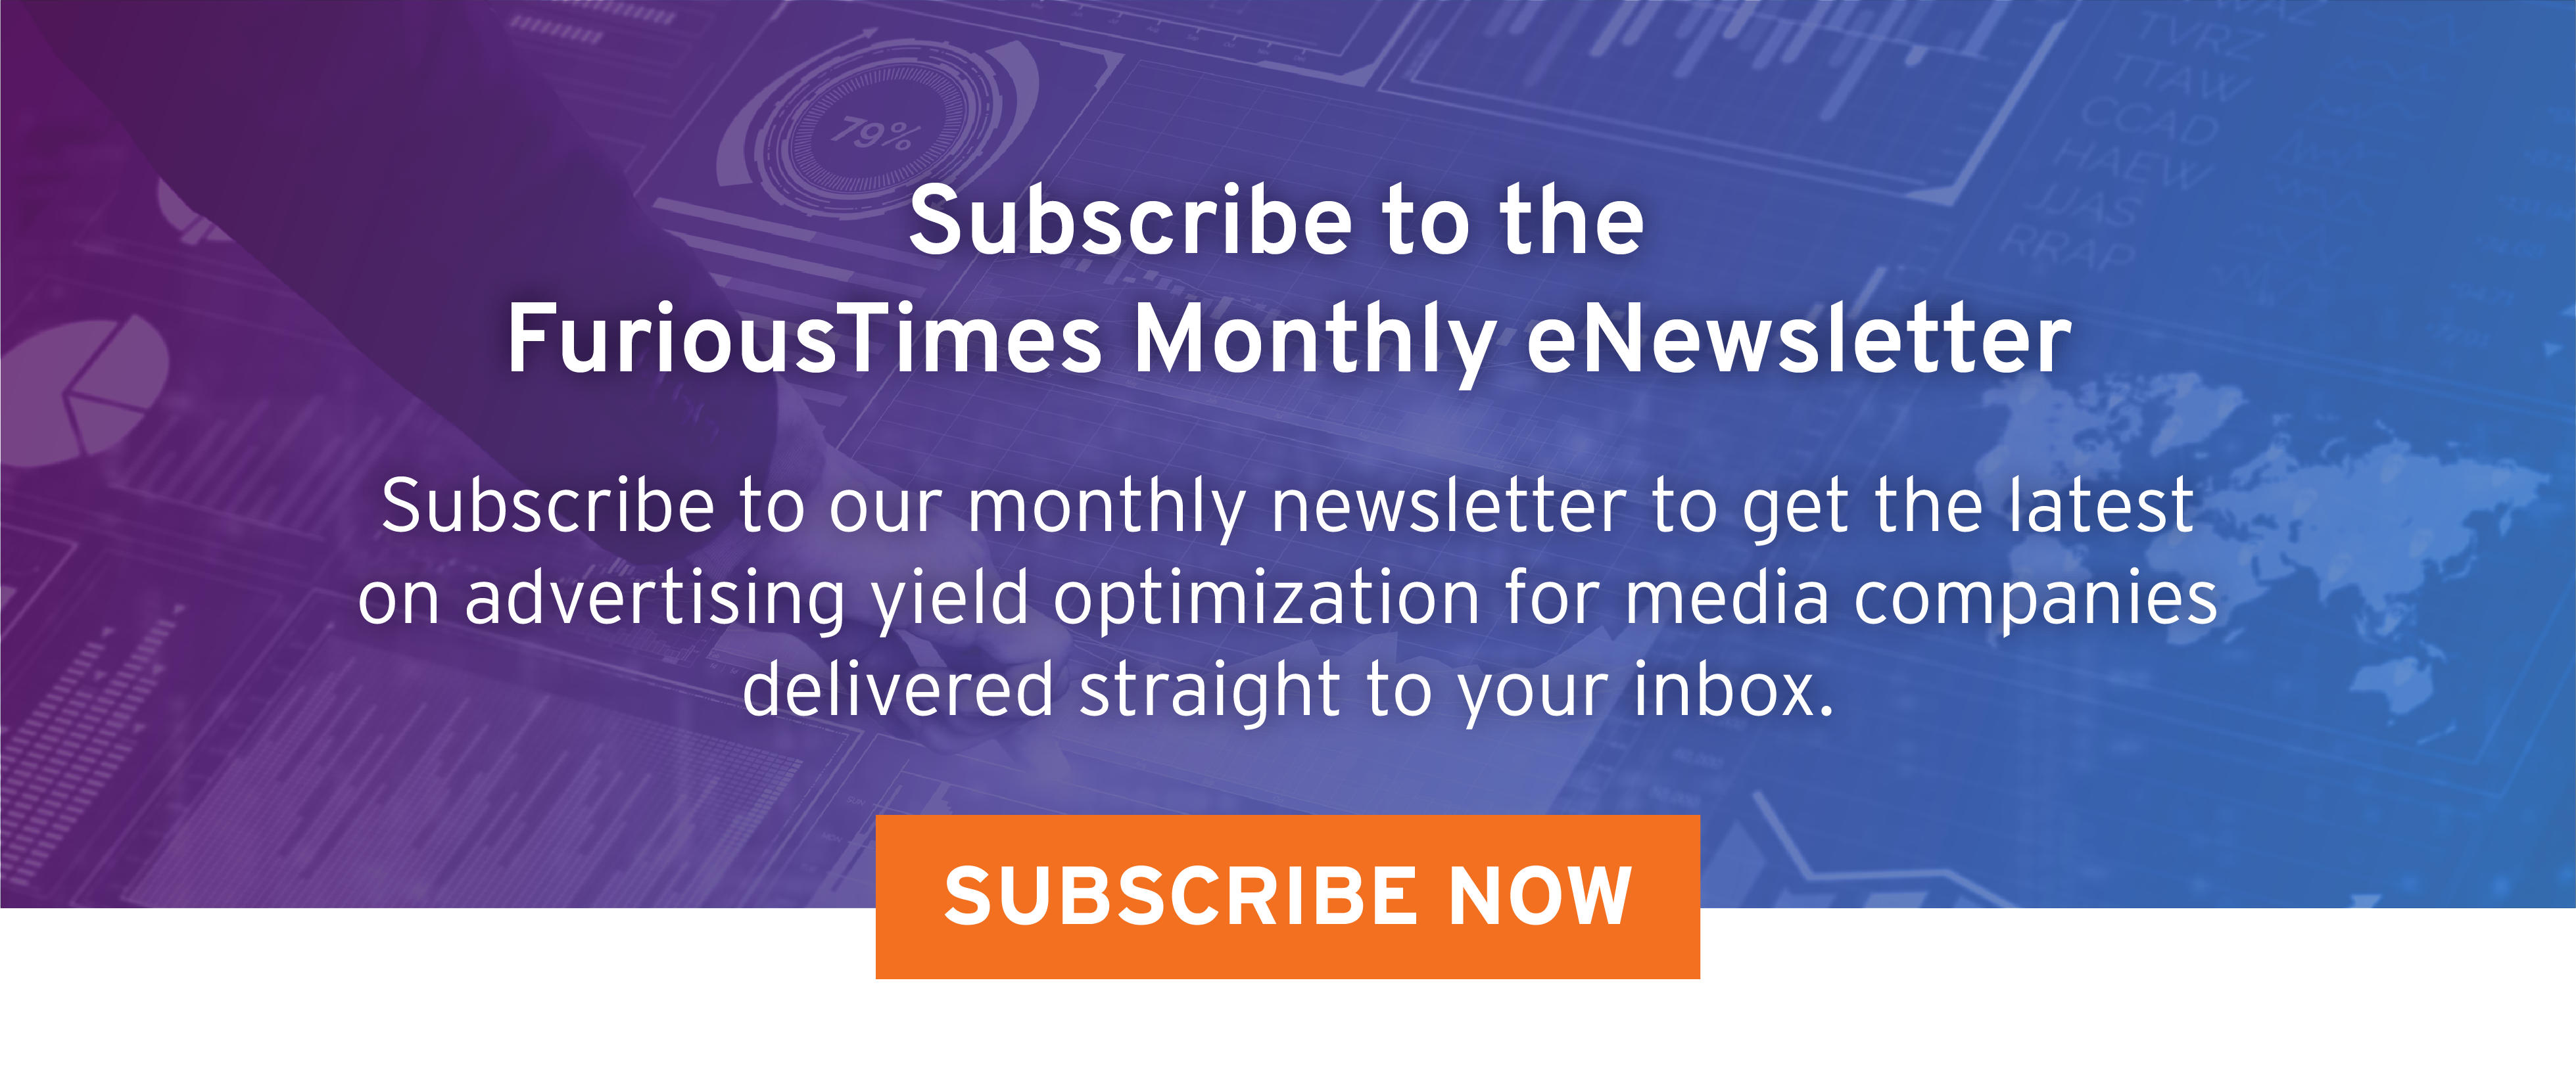 Subscribe to the FuriousTimes Newsletter